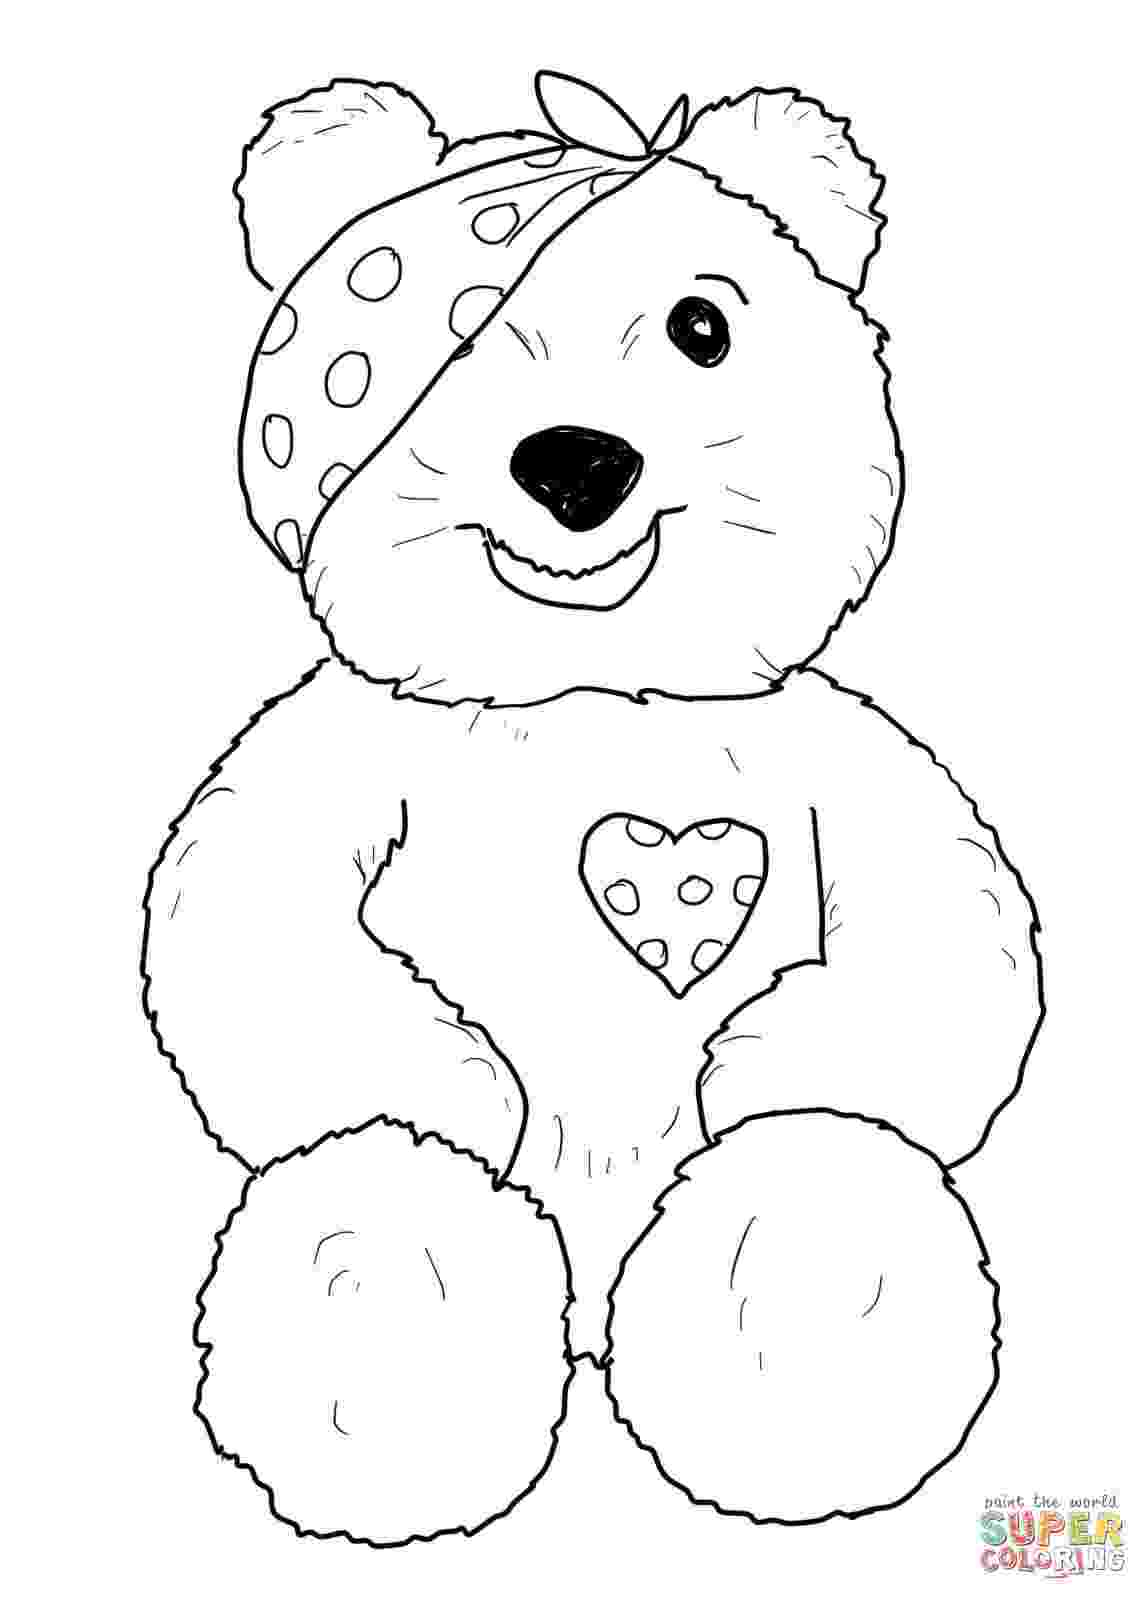 pudsey bear template printables children in need colouring in sheets template bear printables pudsey